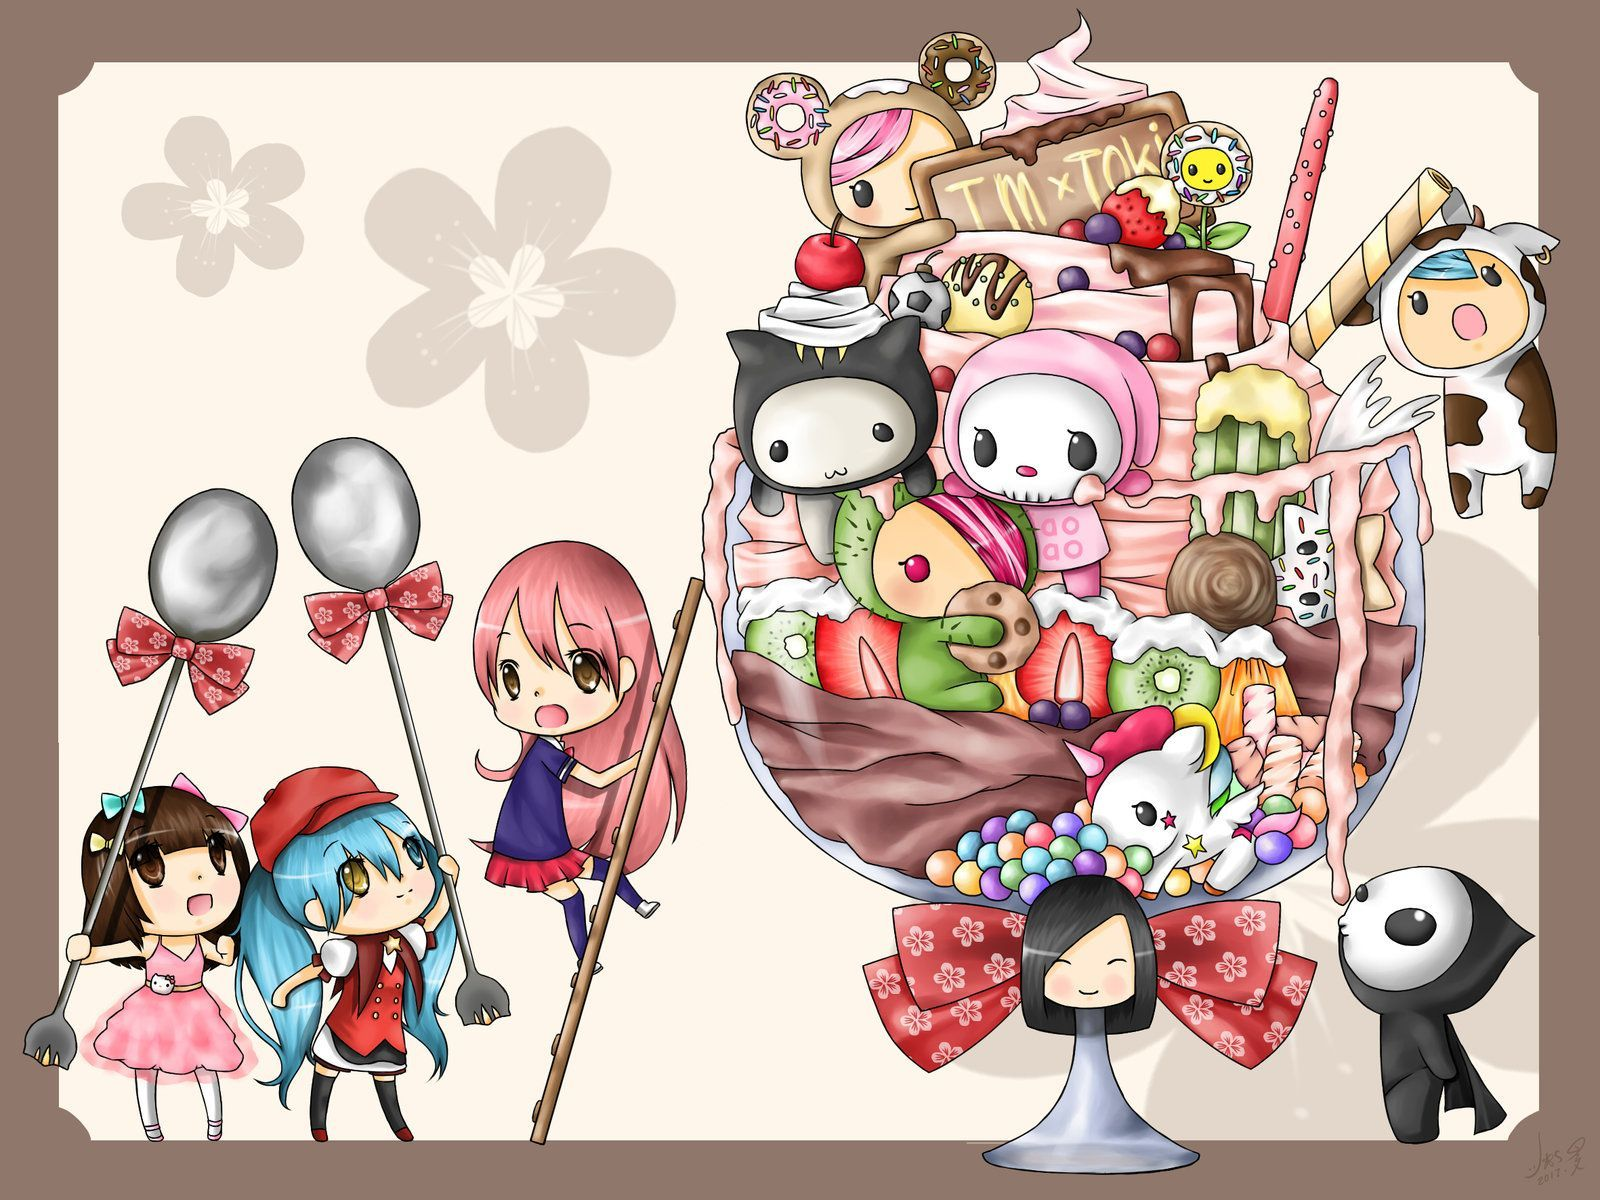 1600x1200 Tokidoki Wallpaper Desktop 900×506 Tokidoki desktop wallpaper (49 ...